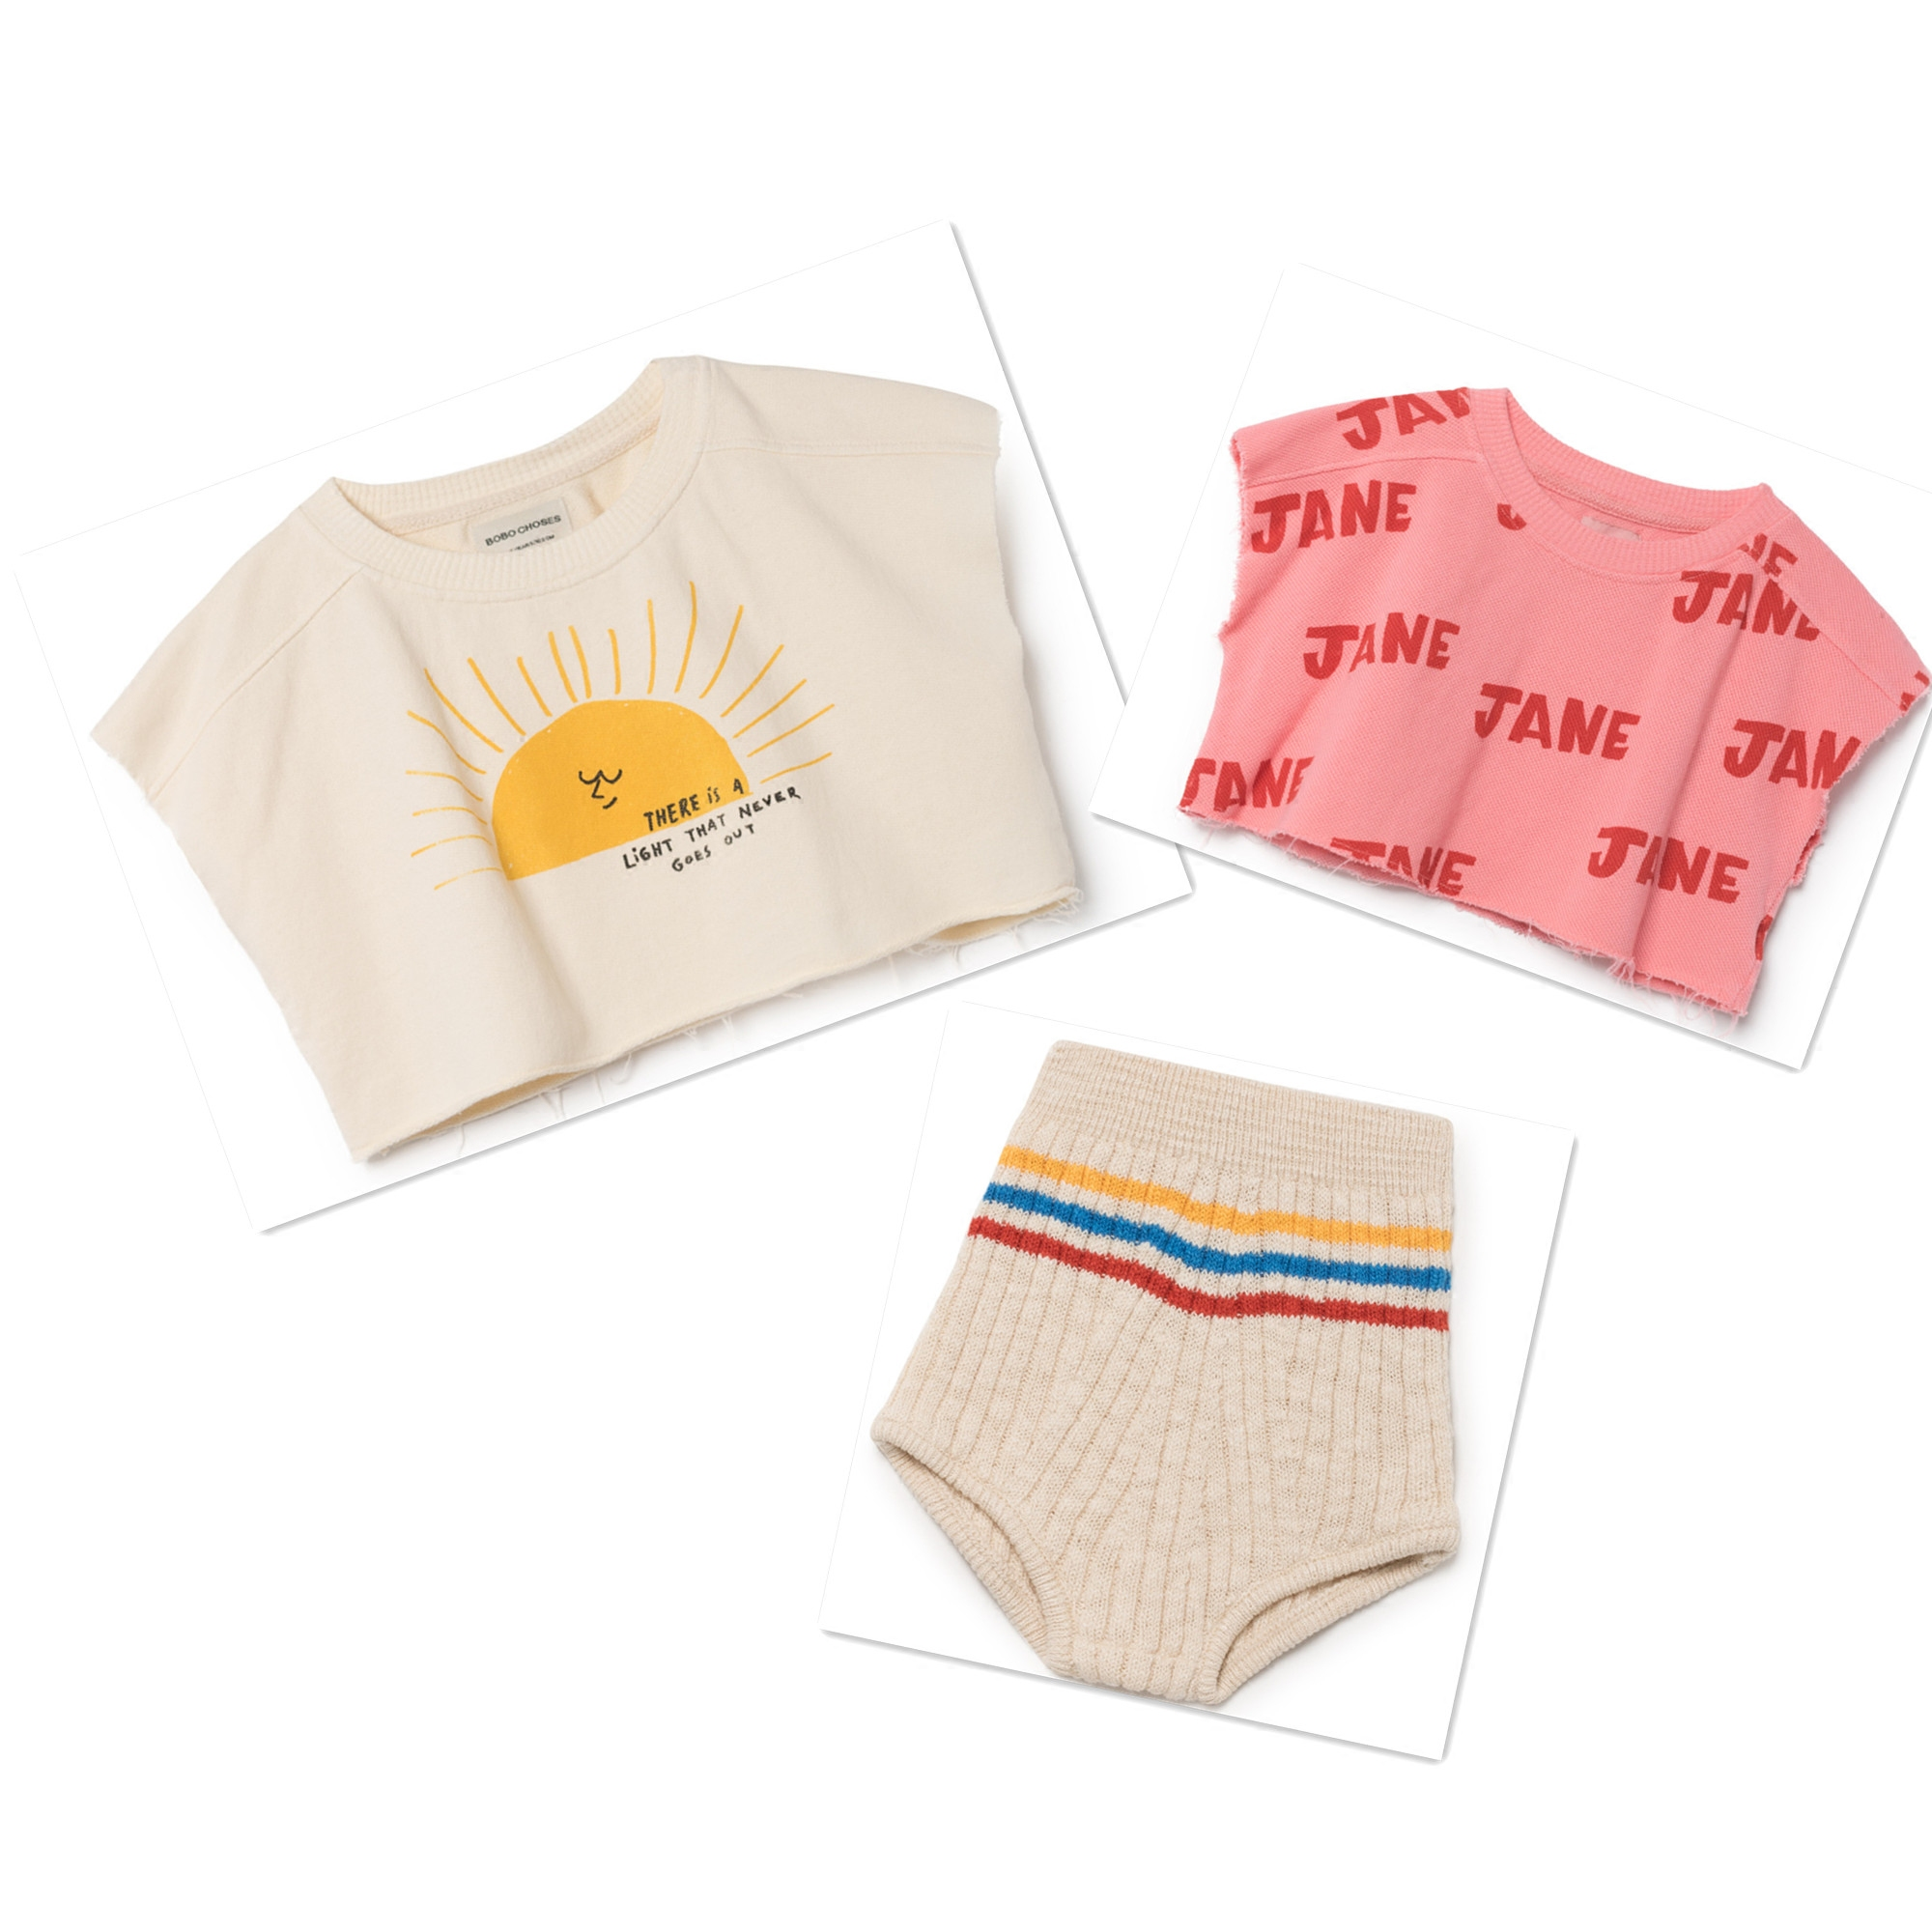 INS HOT BOBO KIDS T SHIRTS NEW ARRIVAL BABY GIRL CLOTHES BABY BOY CLOTHES VETIDOS UNICORN BOBO CHOSES JUMPSUIT CLOTHINGINS HOT BOBO KIDS T SHIRTS NEW ARRIVAL BABY GIRL CLOTHES BABY BOY CLOTHES VETIDOS UNICORN BOBO CHOSES JUMPSUIT CLOTHING